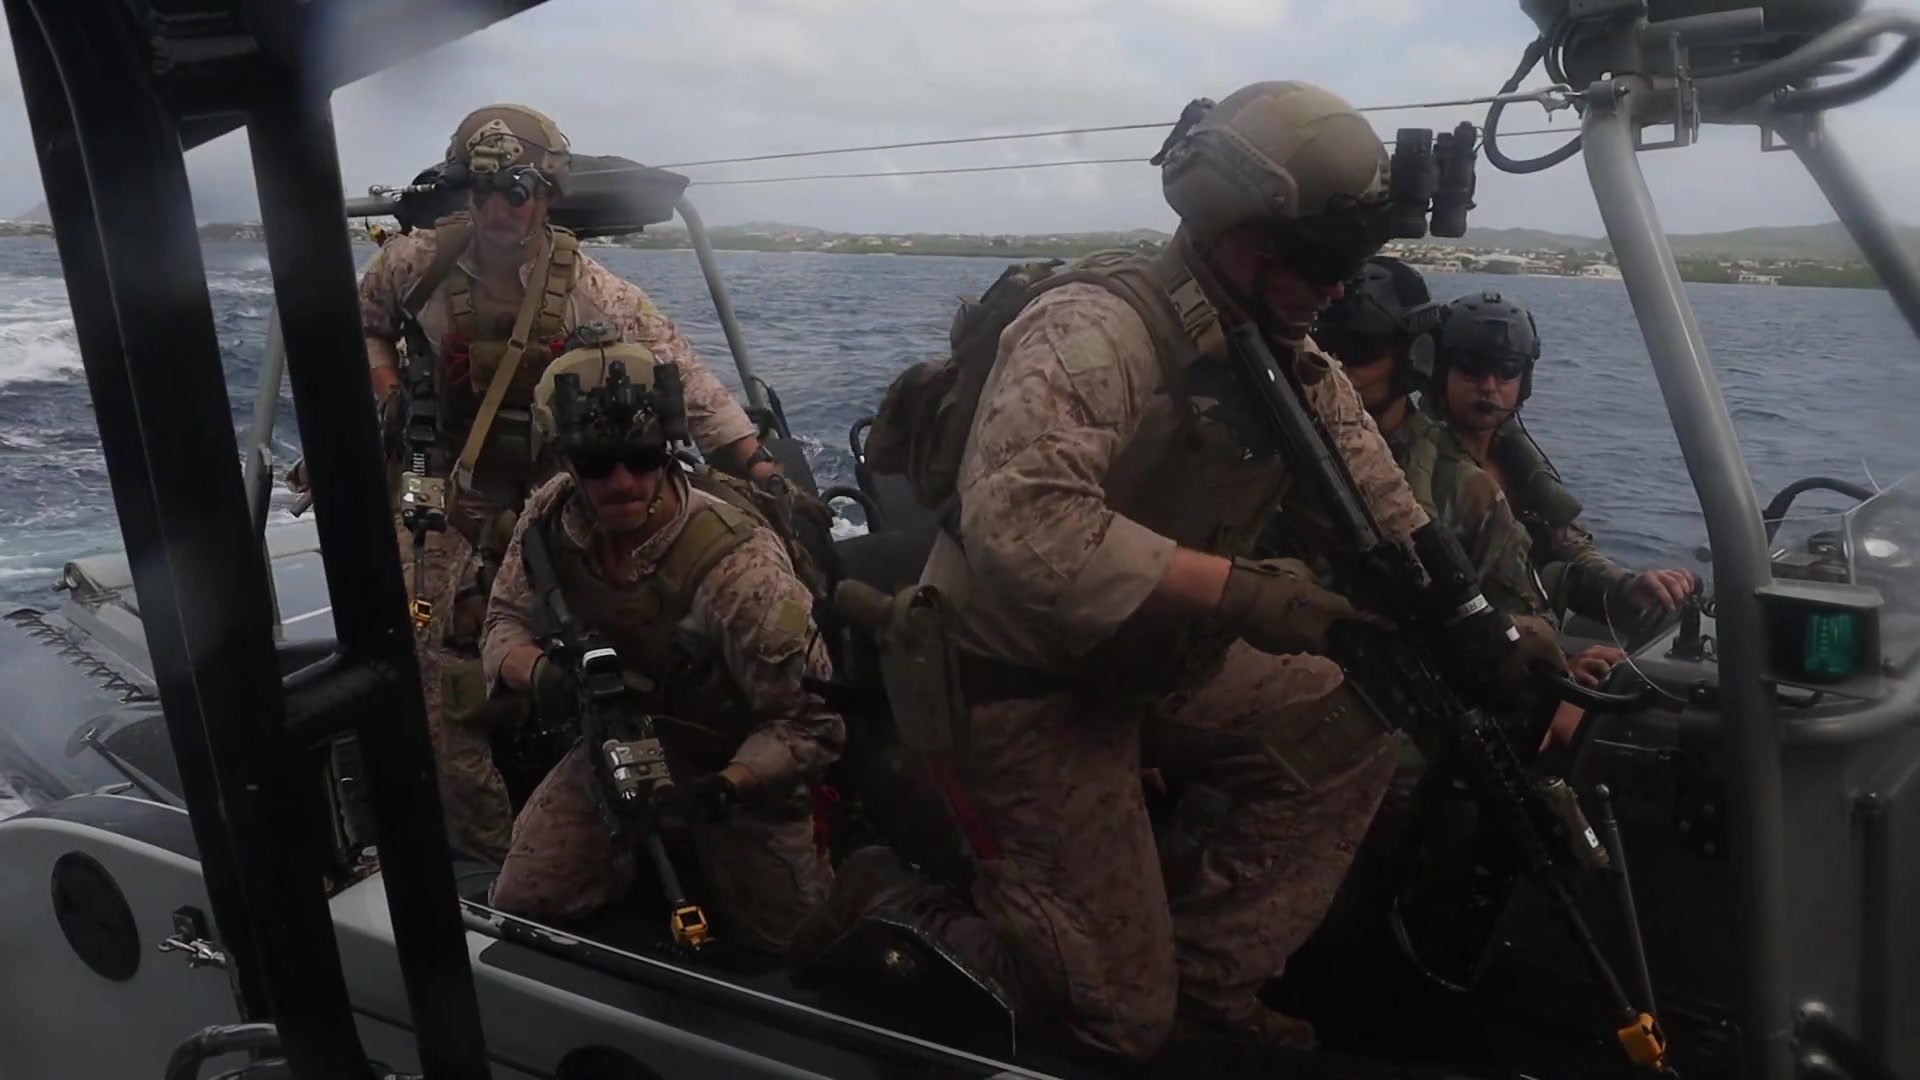 U.S. Marines with C Company, 2d Reconnaissance Battalion (Recon Bn.), 2d Marine Division (MARDIV) participate in visit, board, search, and seizure (VBSS) training with Netherlands Marines with the 32nd Raiding Squadron near Netherlands Marine Barracks Savaneta, Aruba, Nov. 13, 2020. VBSS skills are critical when fighting in littoral and coastal regions. 2d Recon Bn's mastery of these skills is paramount so they can integrate effectively with their naval counterparts to win the next major conflict. Being able to learn from the Dutch Marines in their primary area of operation helps 2d Recon Bn. build a faster, more mobile, and more lethal force when operating in diverse locations. (U.S. Marine Corps video by Lance Cpl. Brian Bolin Jr.)